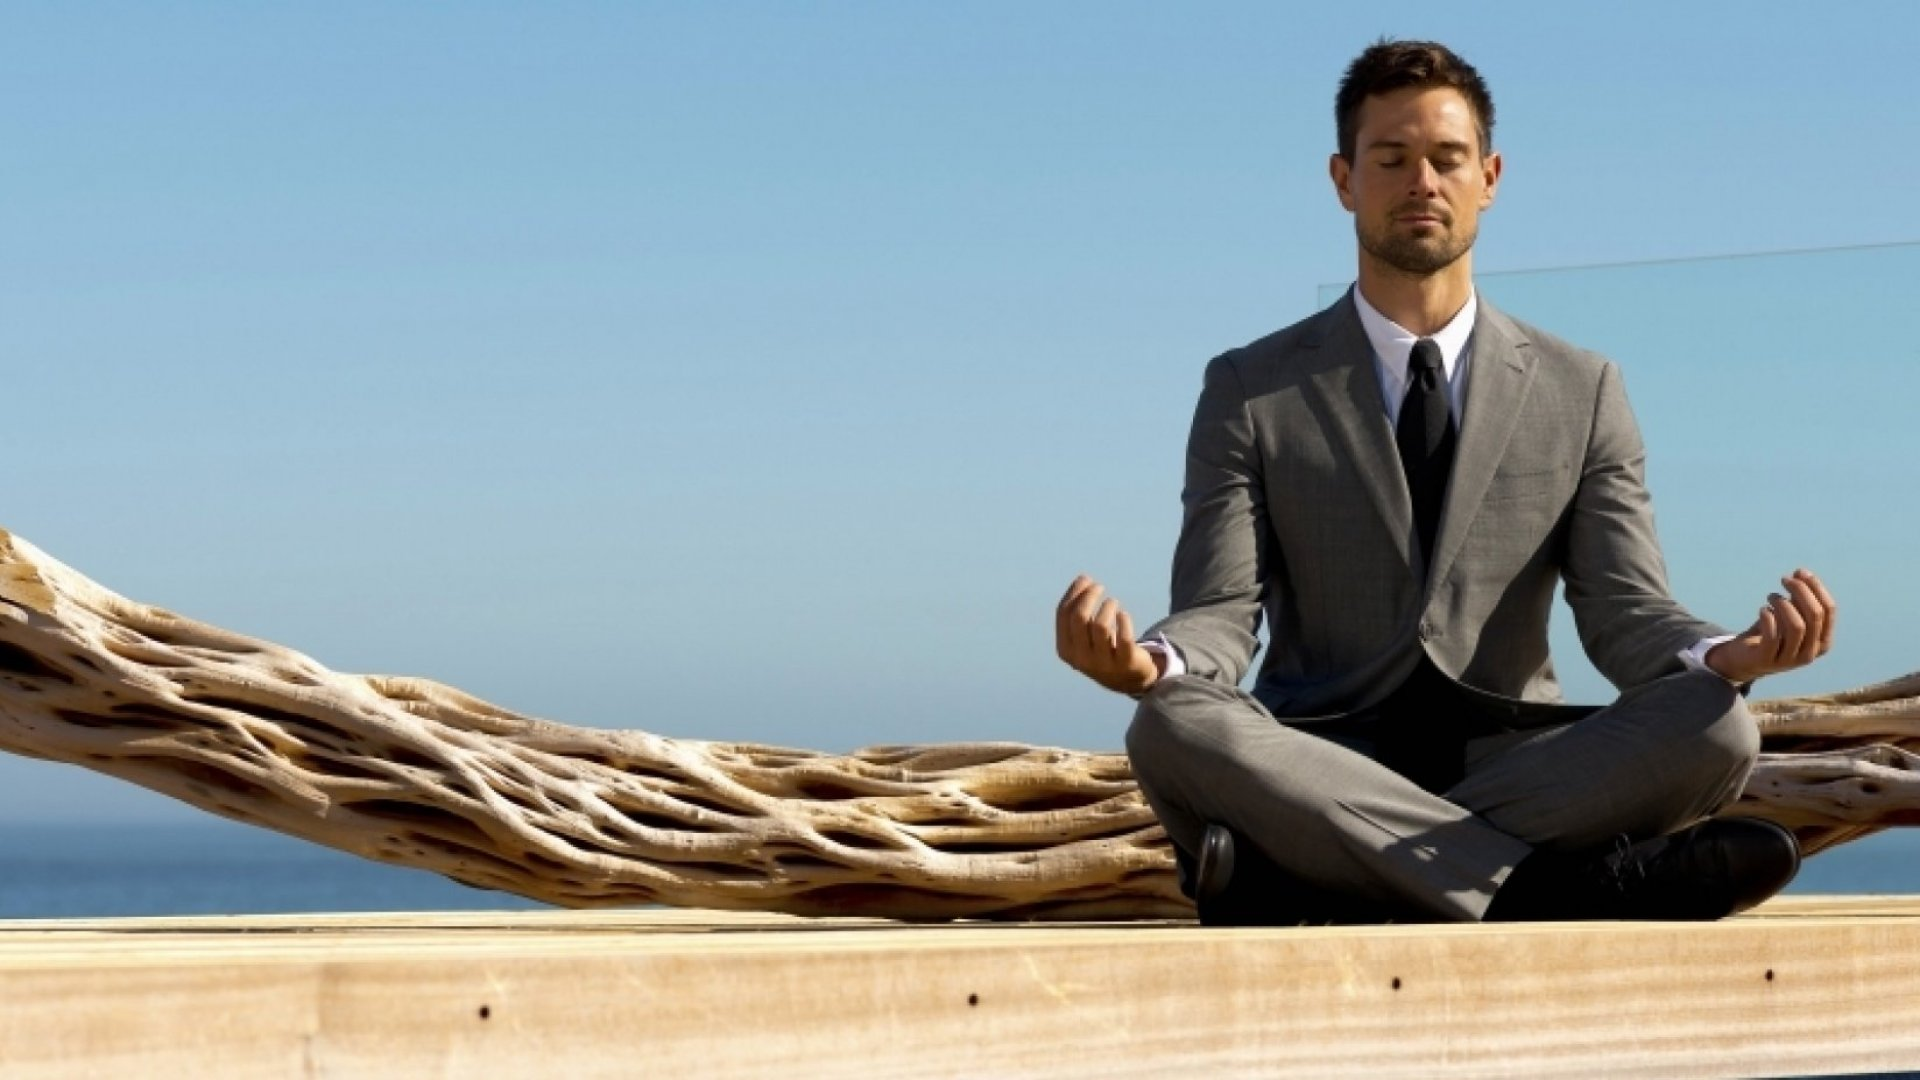 33 Ways to Encourage Mindfulness at Work